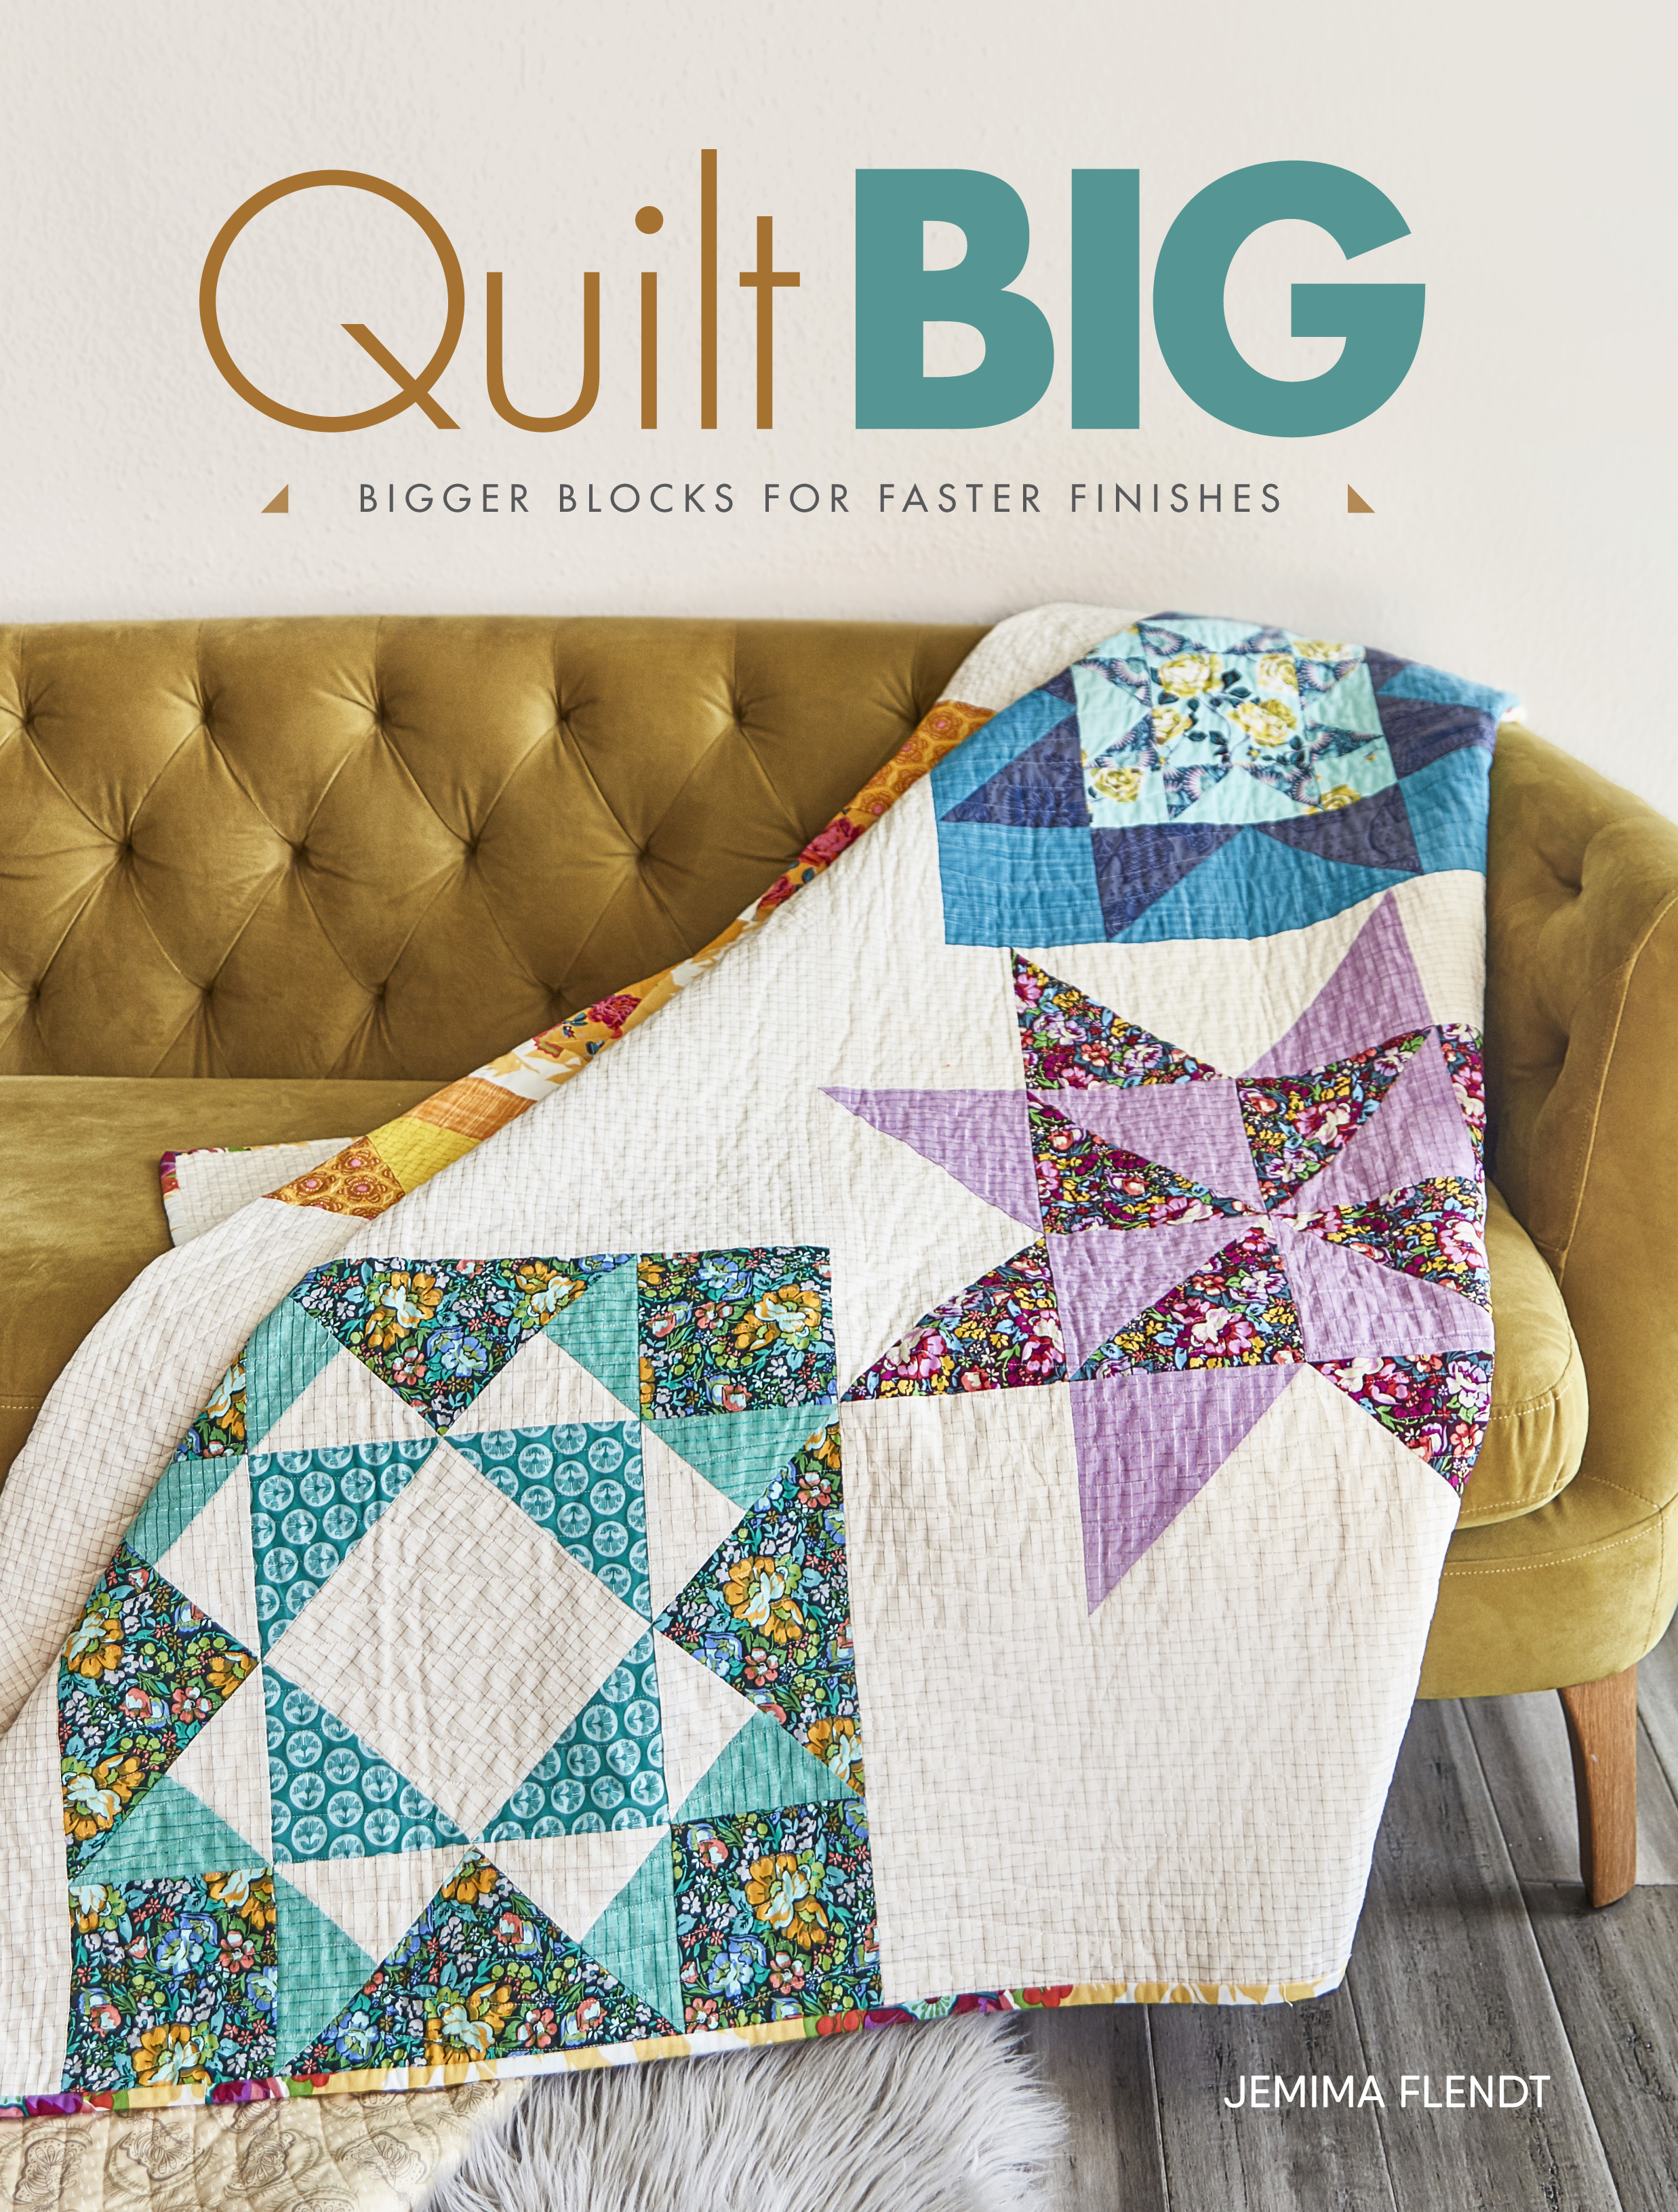 Bow Tie Quilt Quilt Big Book Tour Blossom Heart Quilts